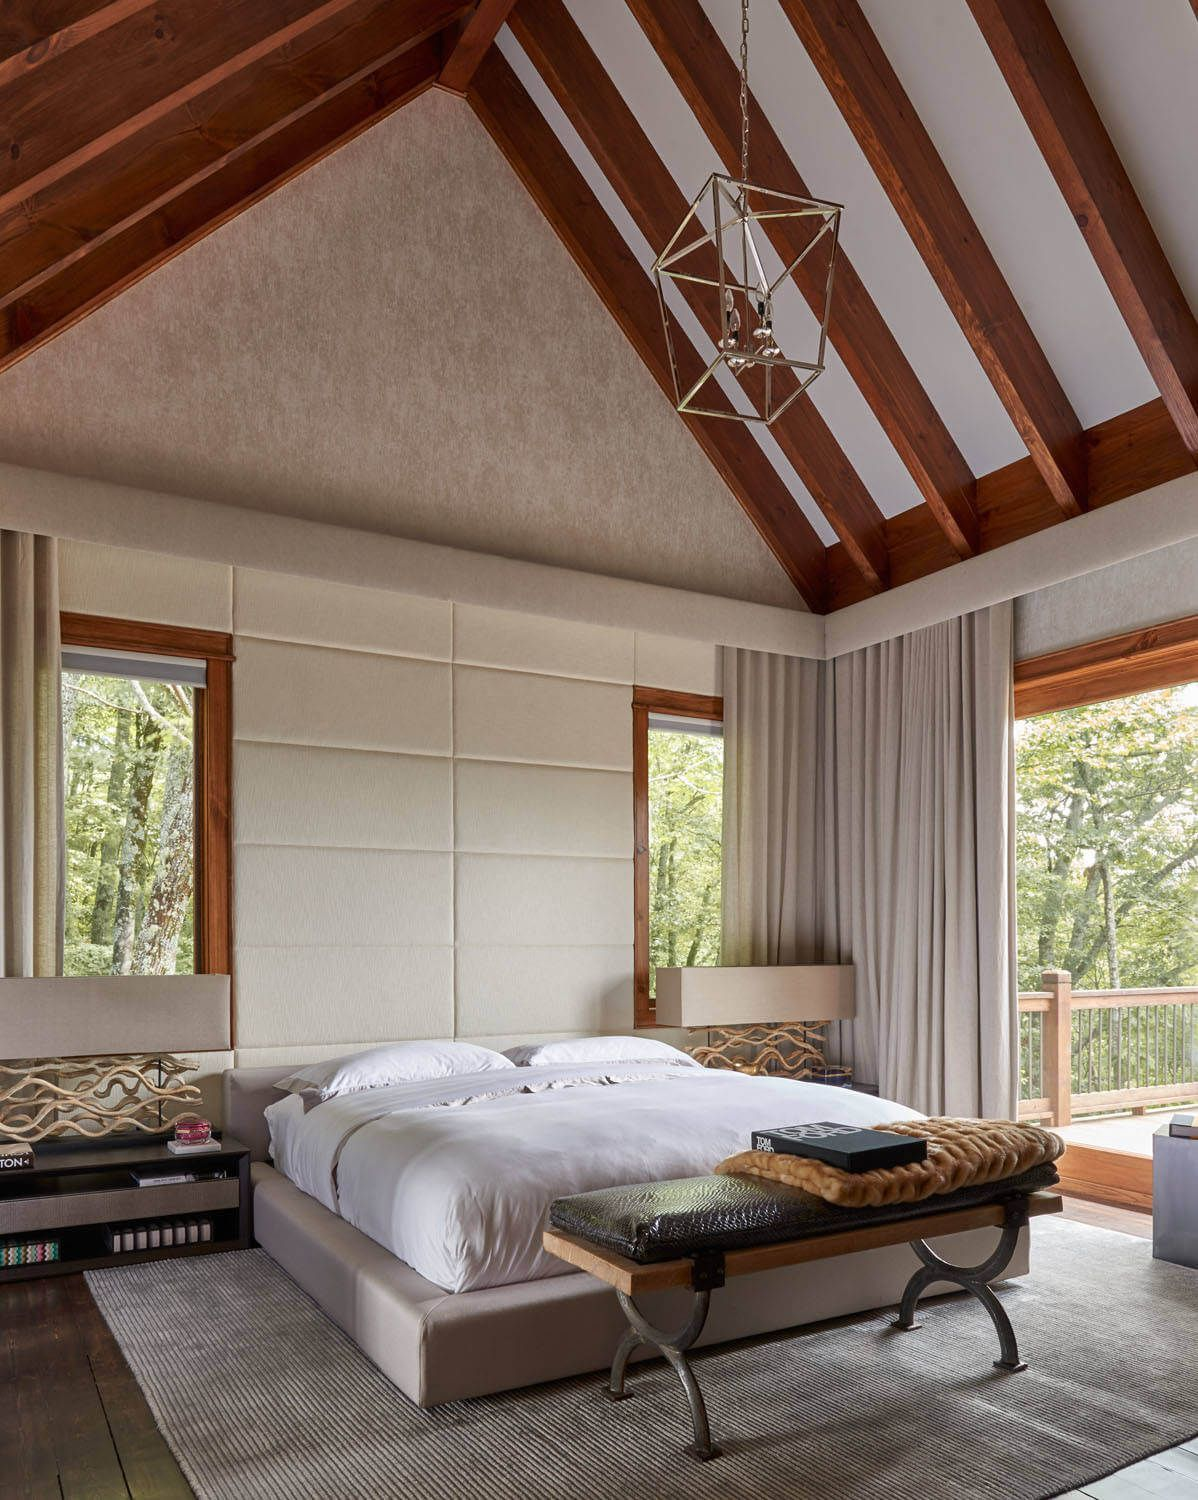 Vaulted Ceilings: A Modern Twist on Classic Architecture  Bedroom